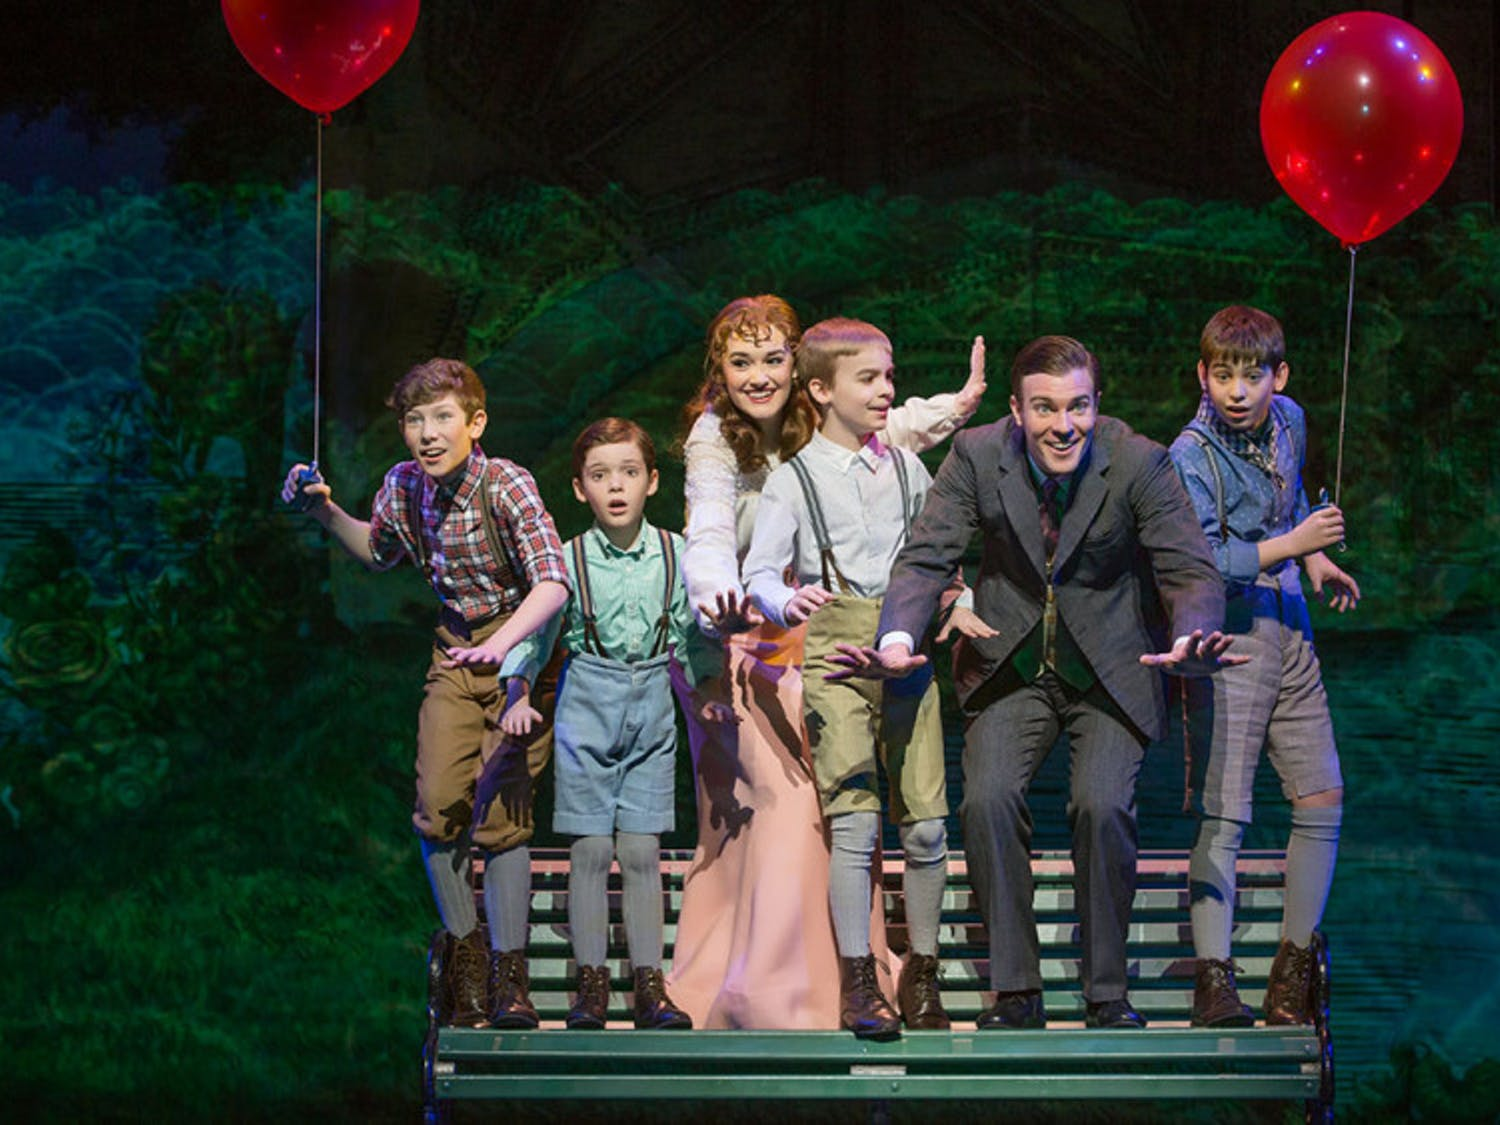 """The Phillips Center for the Performing Arts will present the U.S. National Tour of """"Finding Neverland"""" - amusical, based off true events, about how playwright J.M. Barrie brought his story of Peter Panto life - on Feb. 22 at 7:30 p.m."""